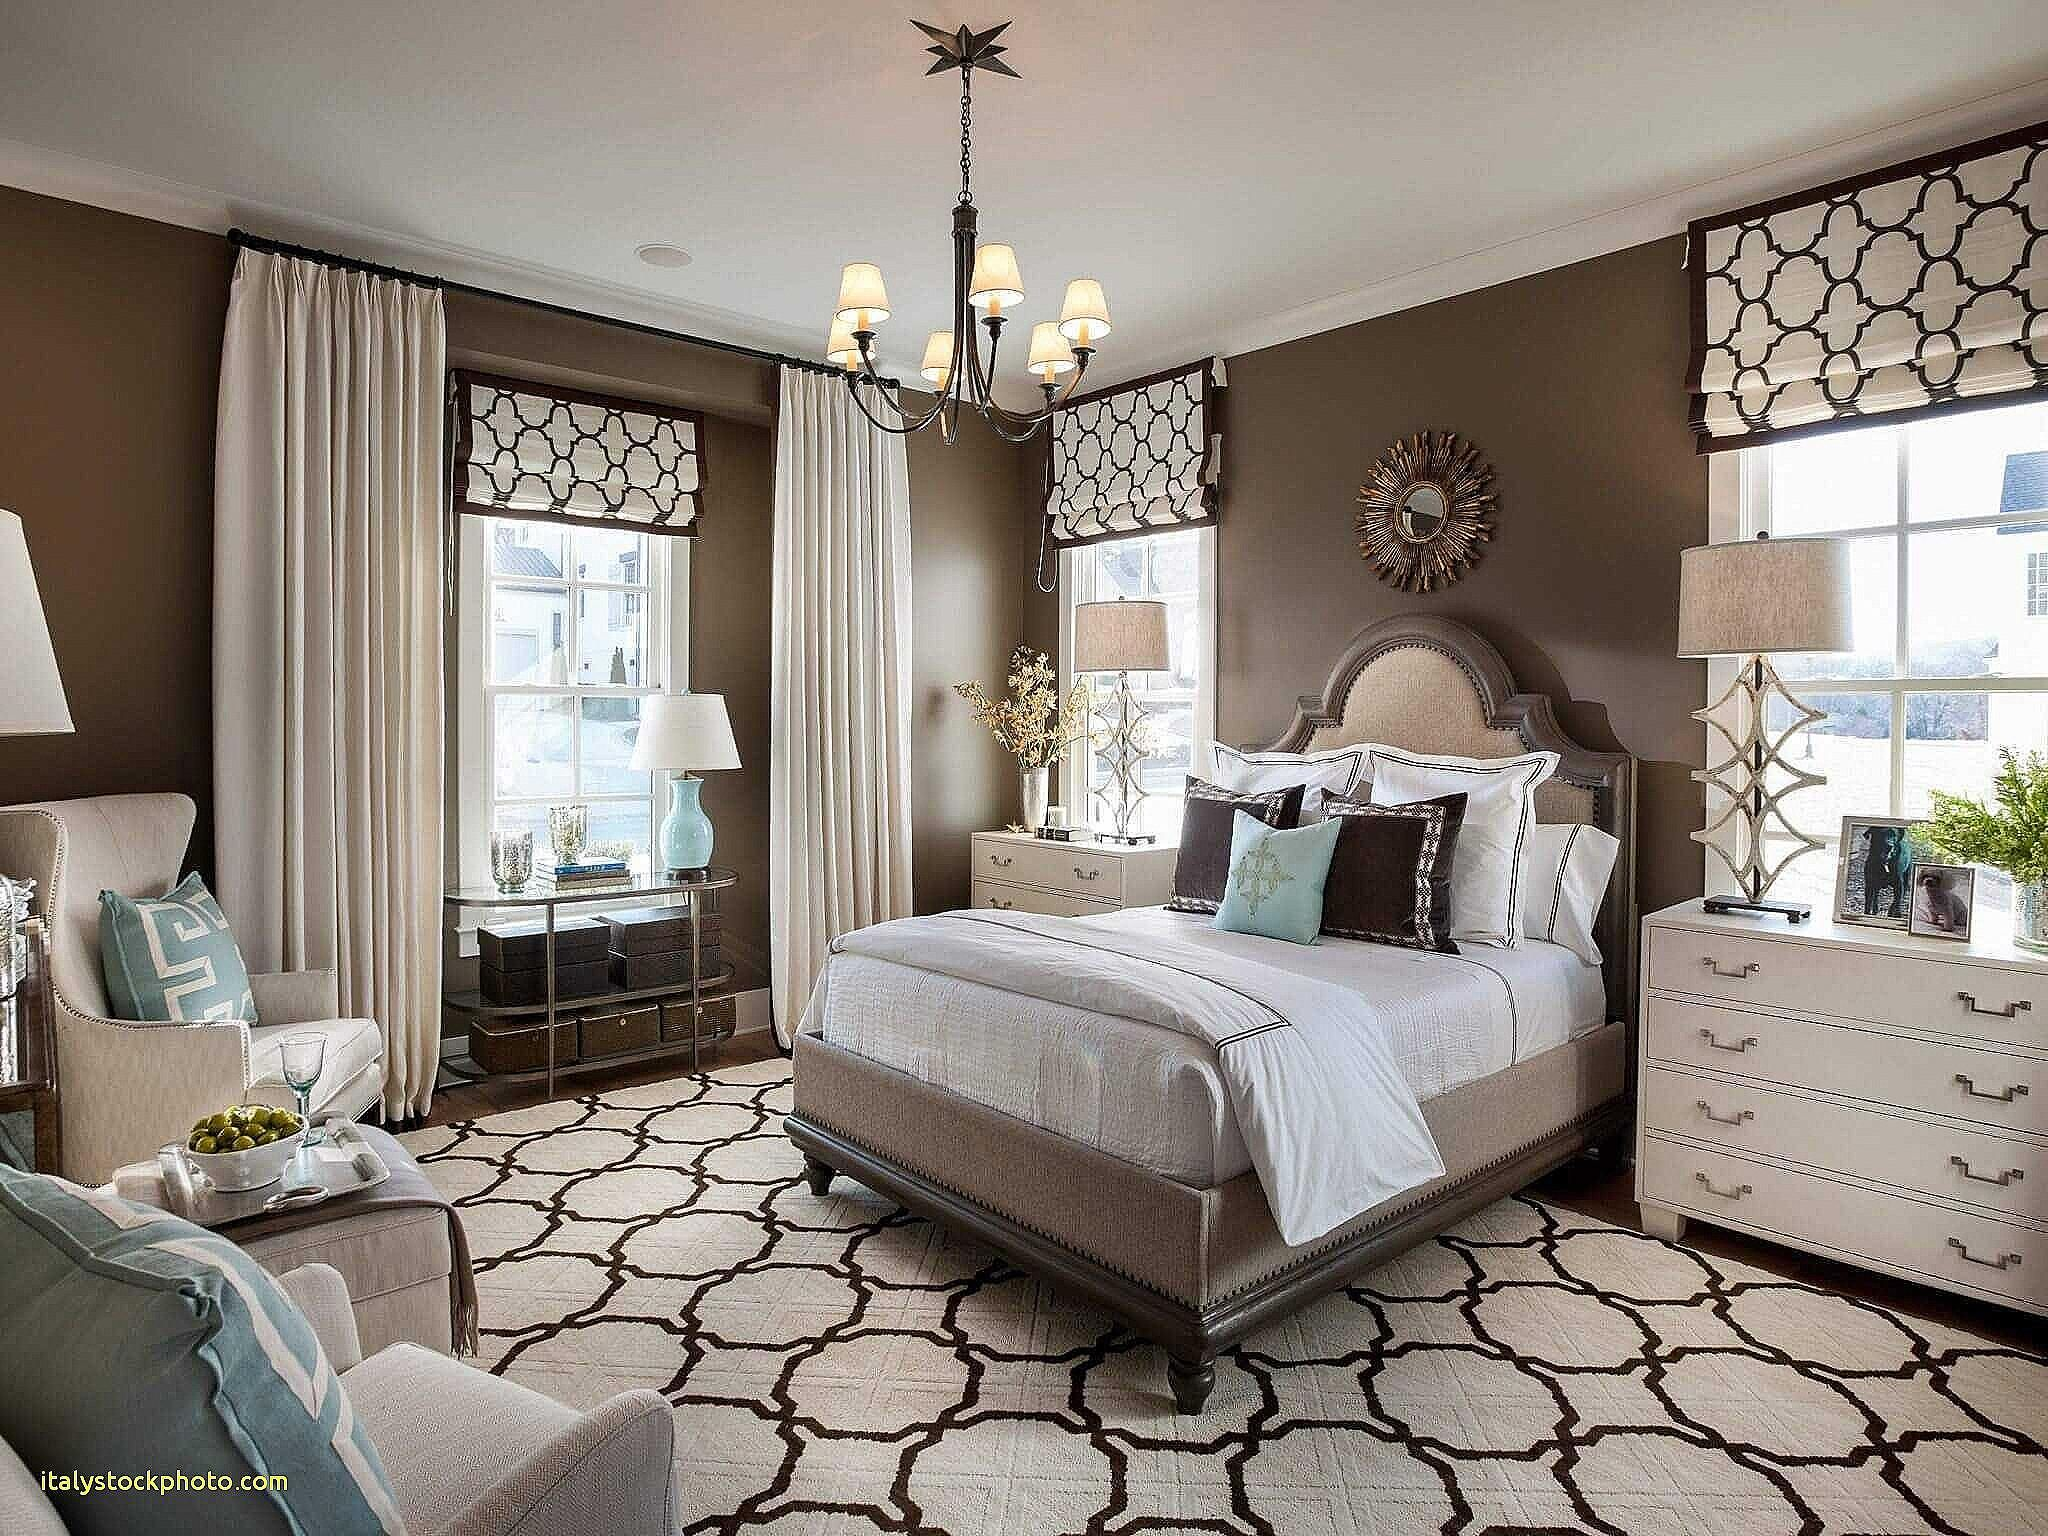 Best Of Small Master Bedroom Ideas Decorating Smallmaster Small Master Bedroom Luxury Bedroom Master Small Guest Bedroom